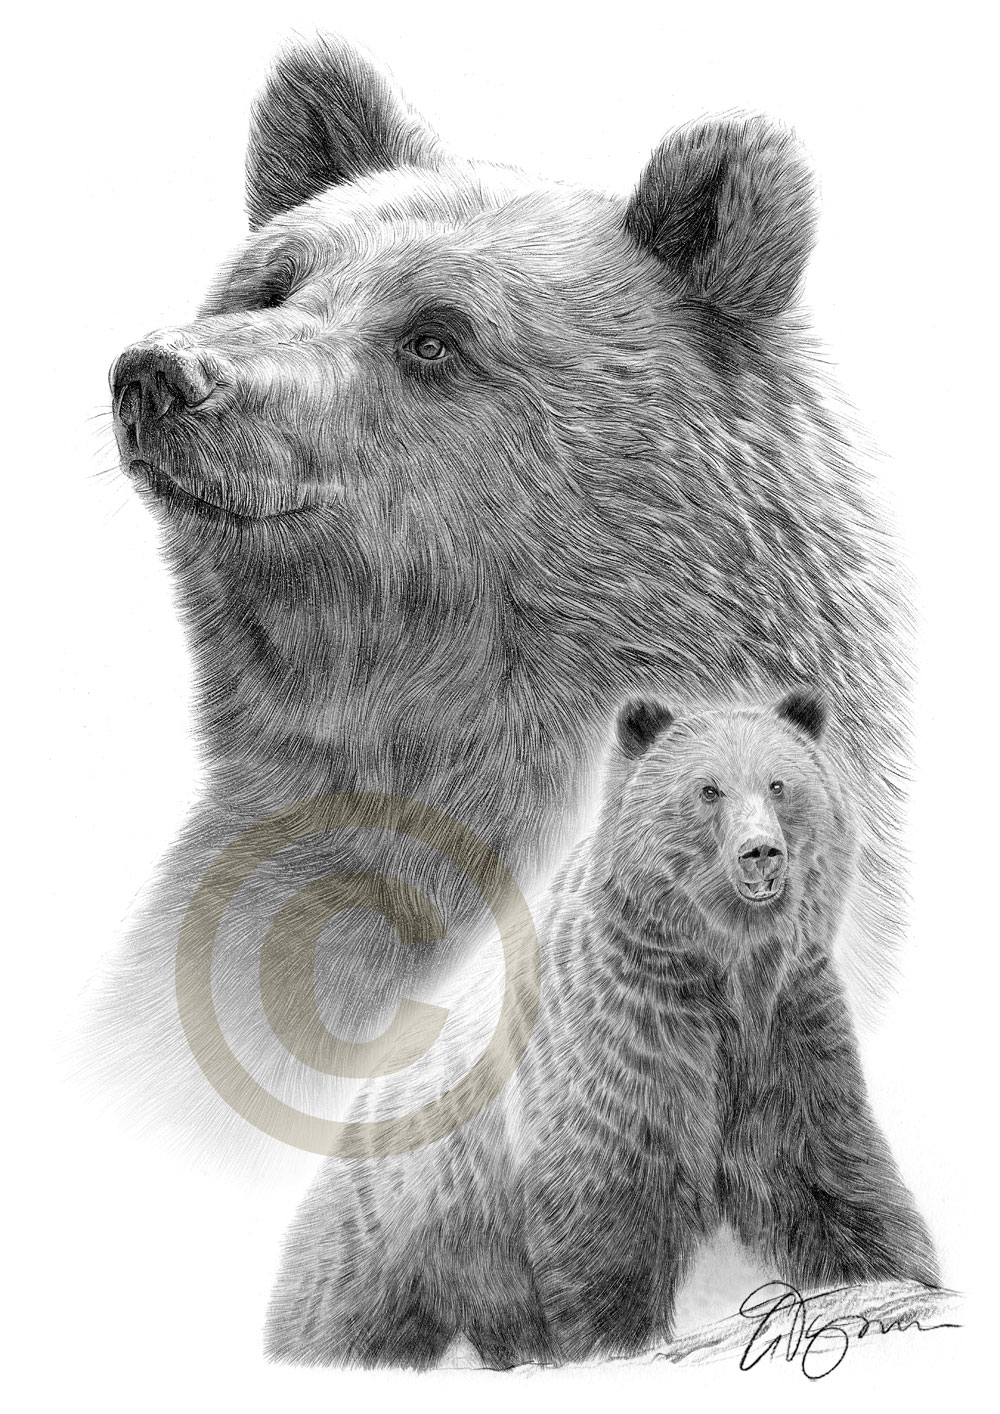 Drawn grizzly bear pencil drawing Acrylic brown A3 Gary oil